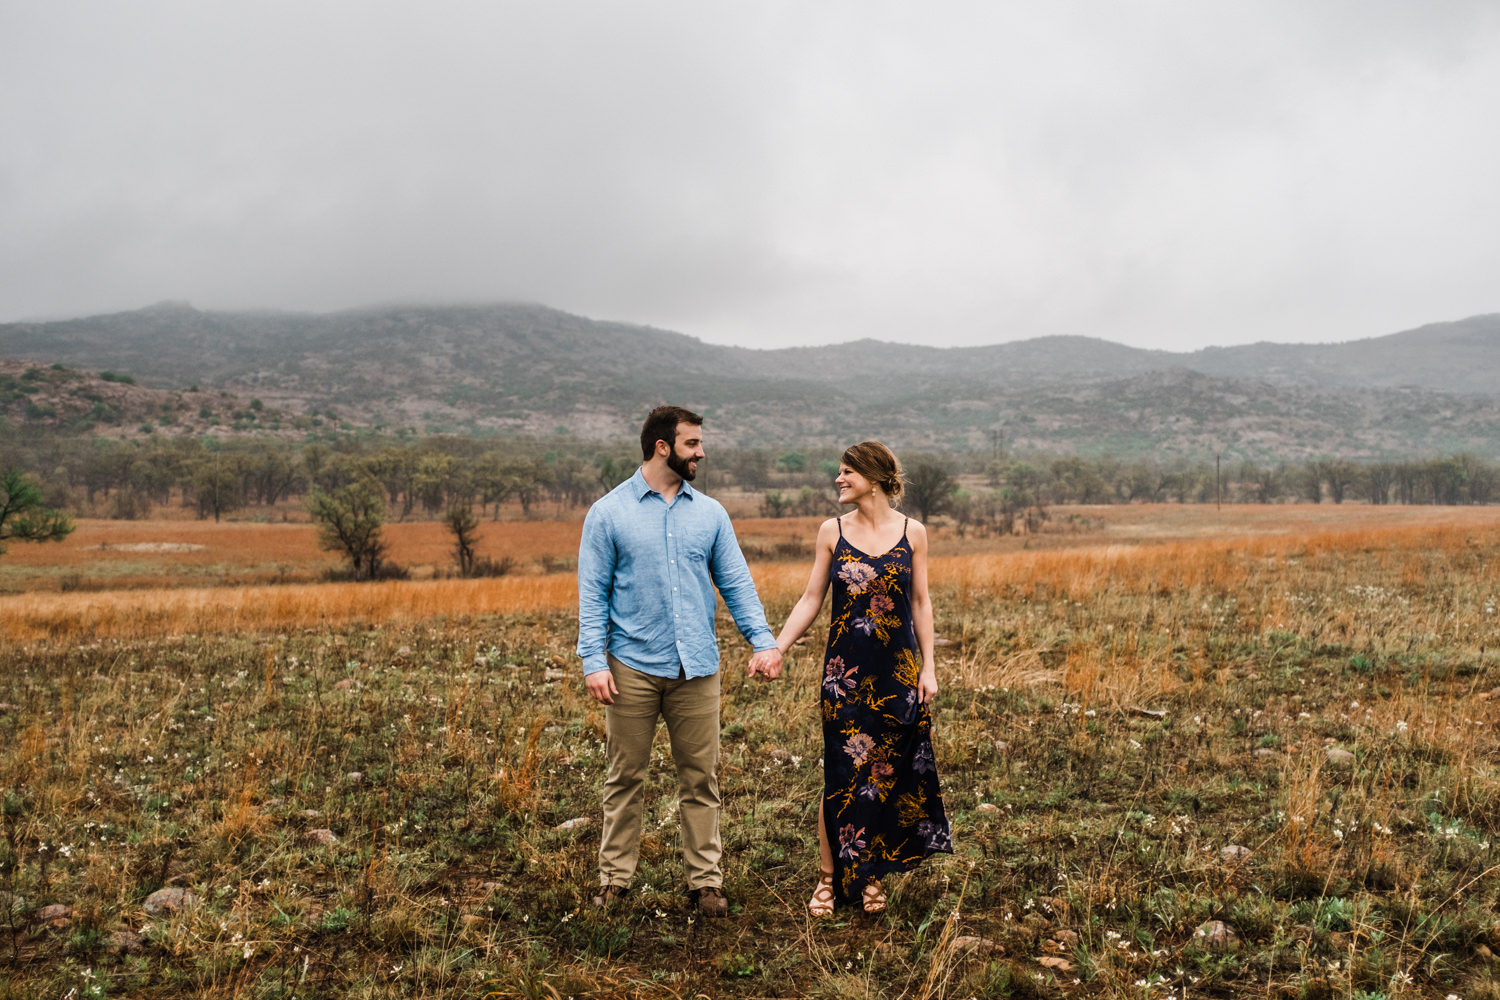 Oklahoma Engagement-Neal Dieker-Oklahoma Wedding Photography-Wichita Mountains-Wichita, Kansas Portrait Photographer-183.jpg